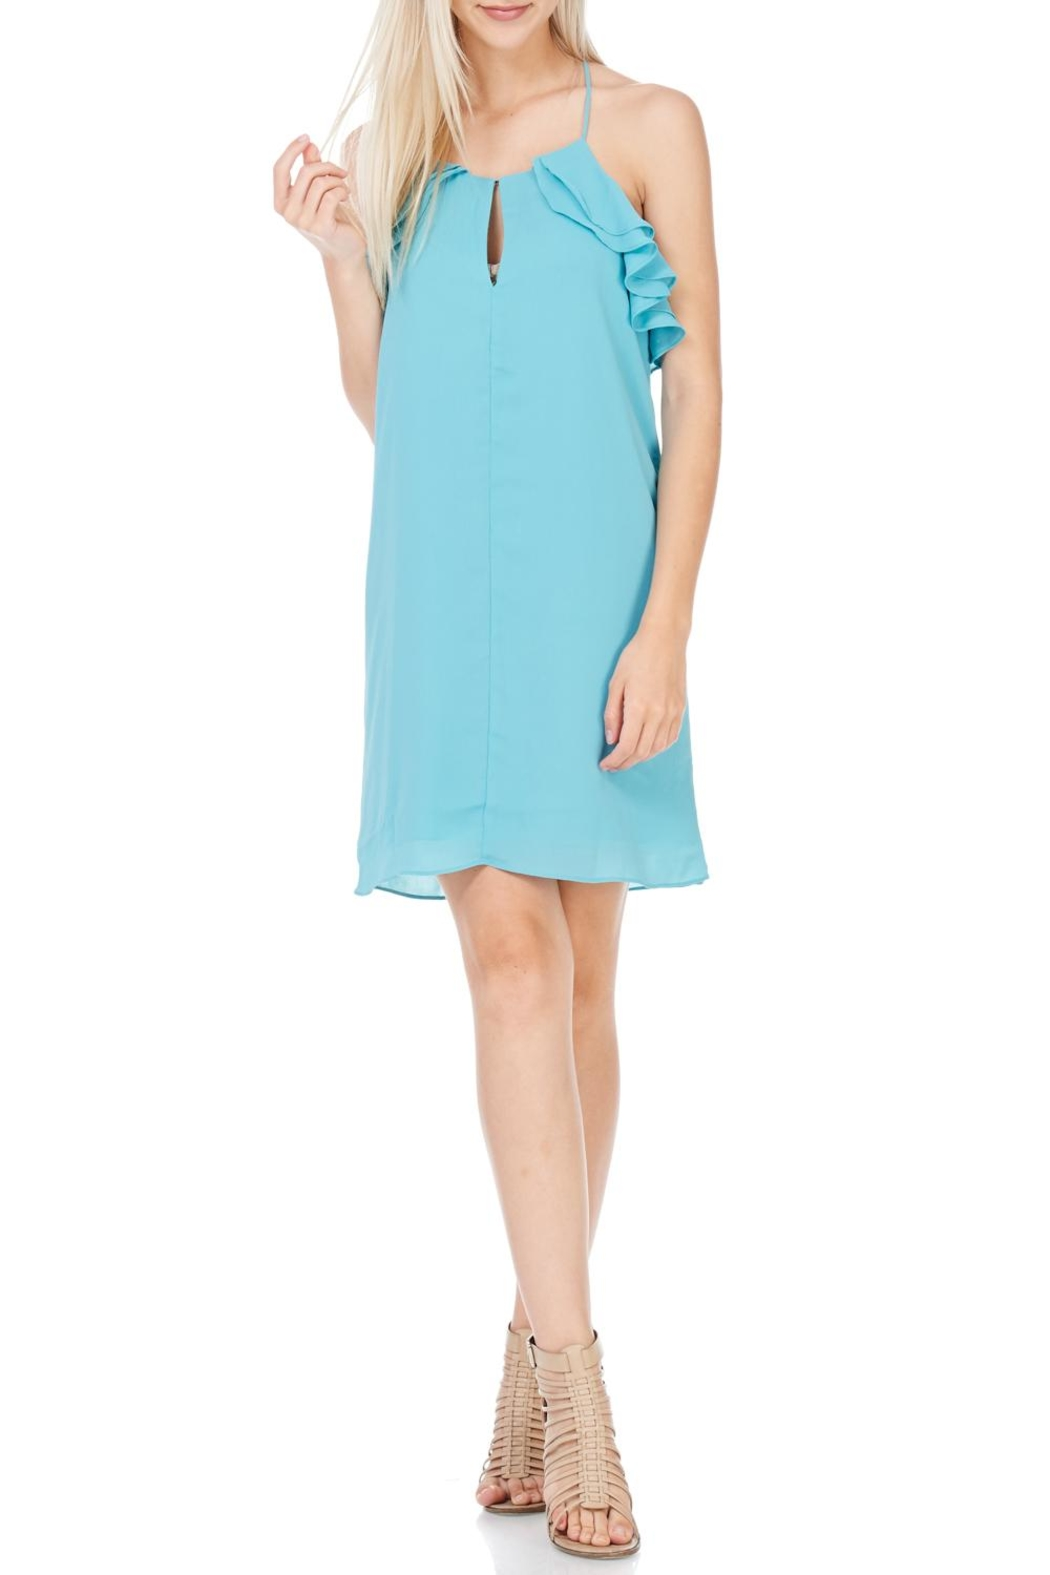 Everly Racerback Lined Dress - Main Image